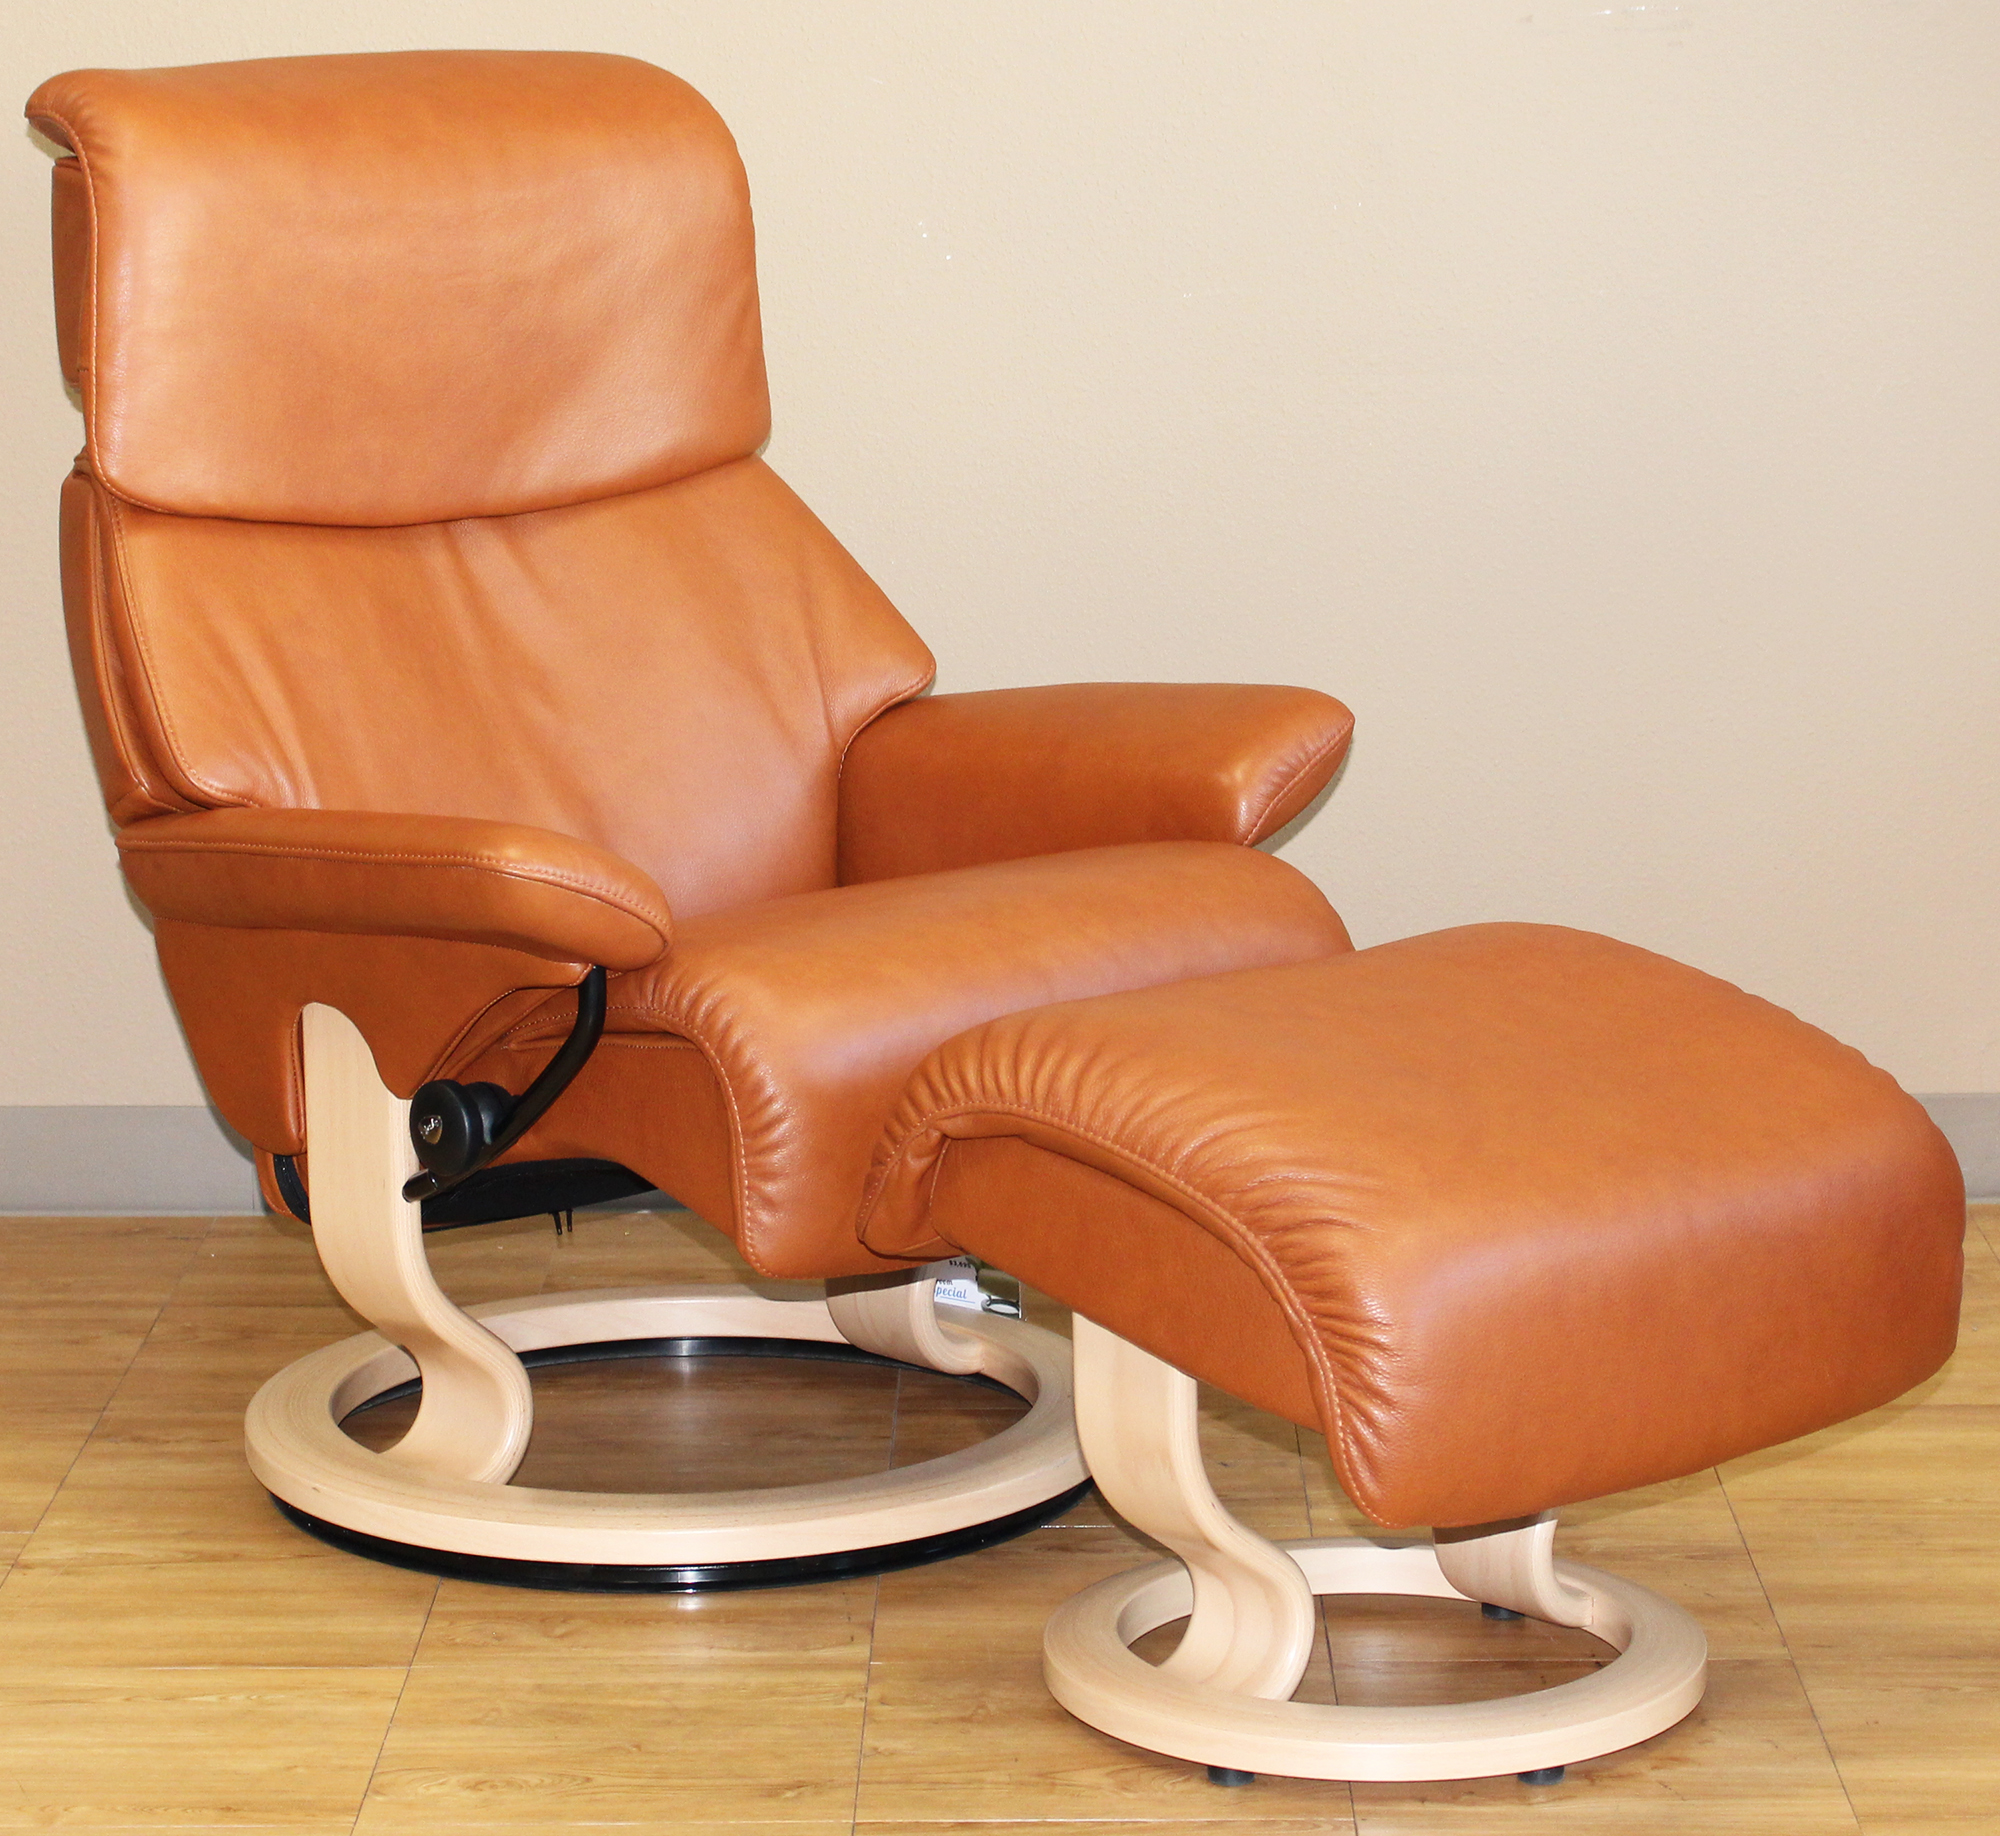 stressless dream royalin tigereye leather recliner chair and ottoman - Stressless Chairs & Stressless Chairs. Ekornes Stressless Relaxing Modern Recliner ... islam-shia.org